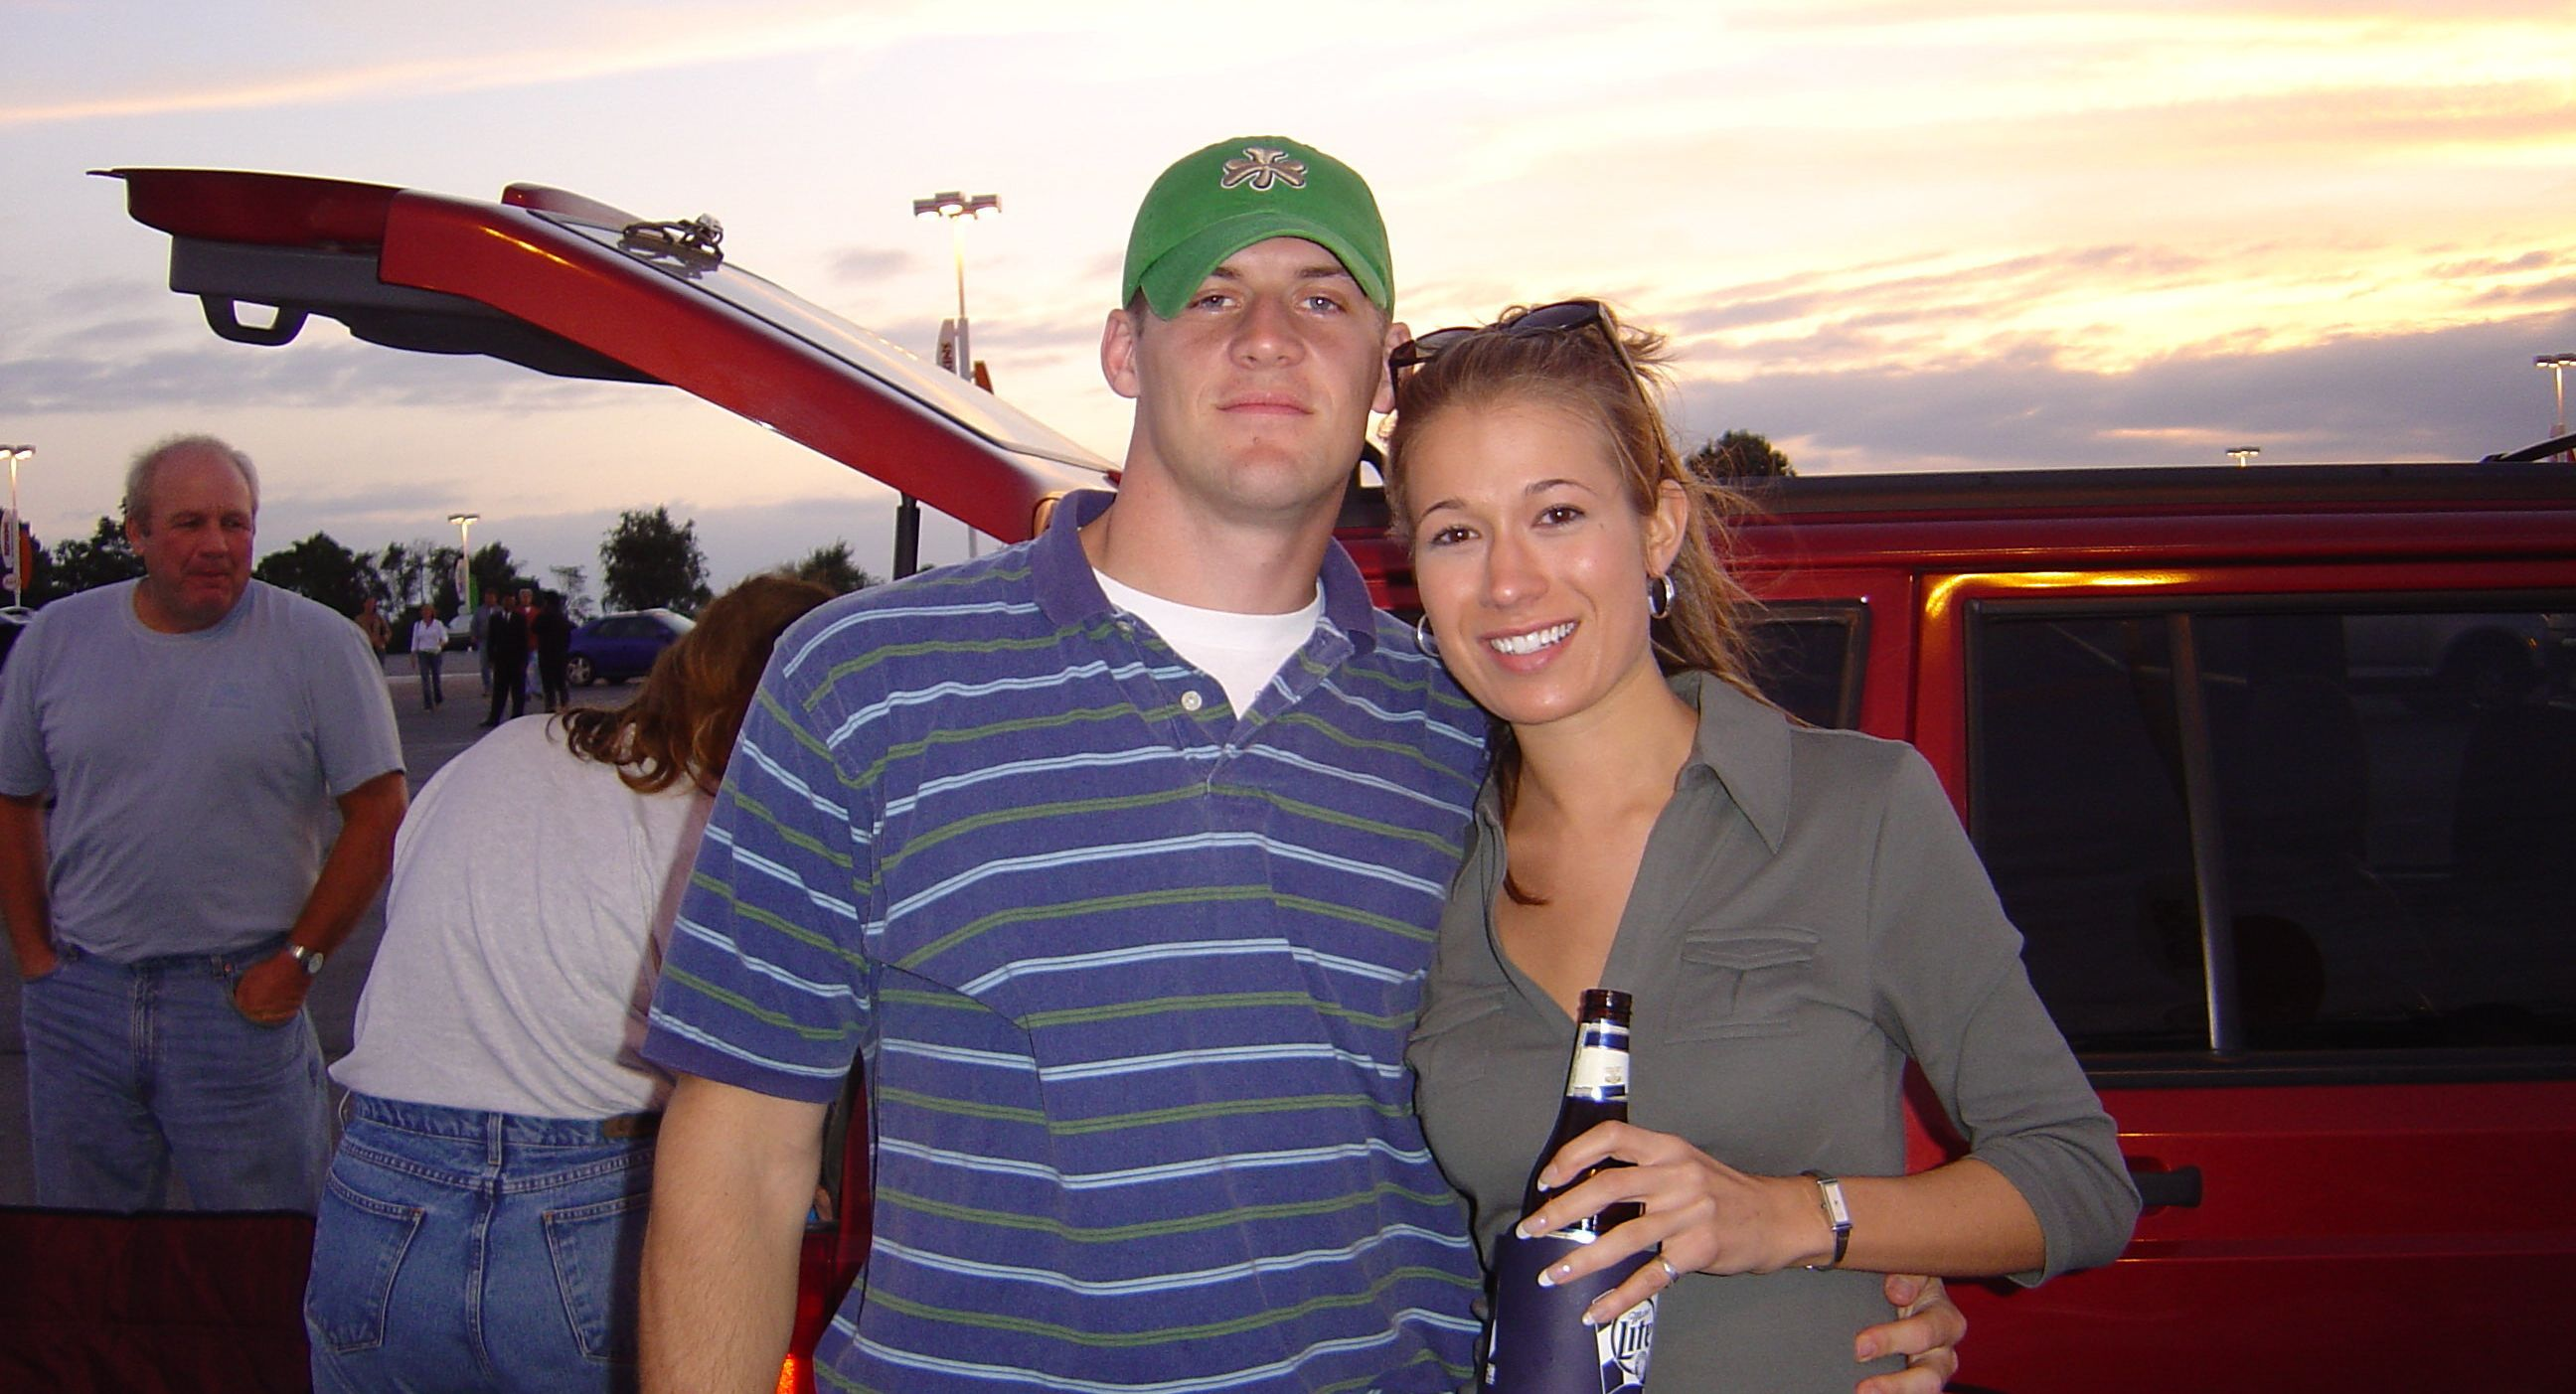 A woman holding a beer stands with a man in a parking lot in front of a vehicle with its tailgate open.